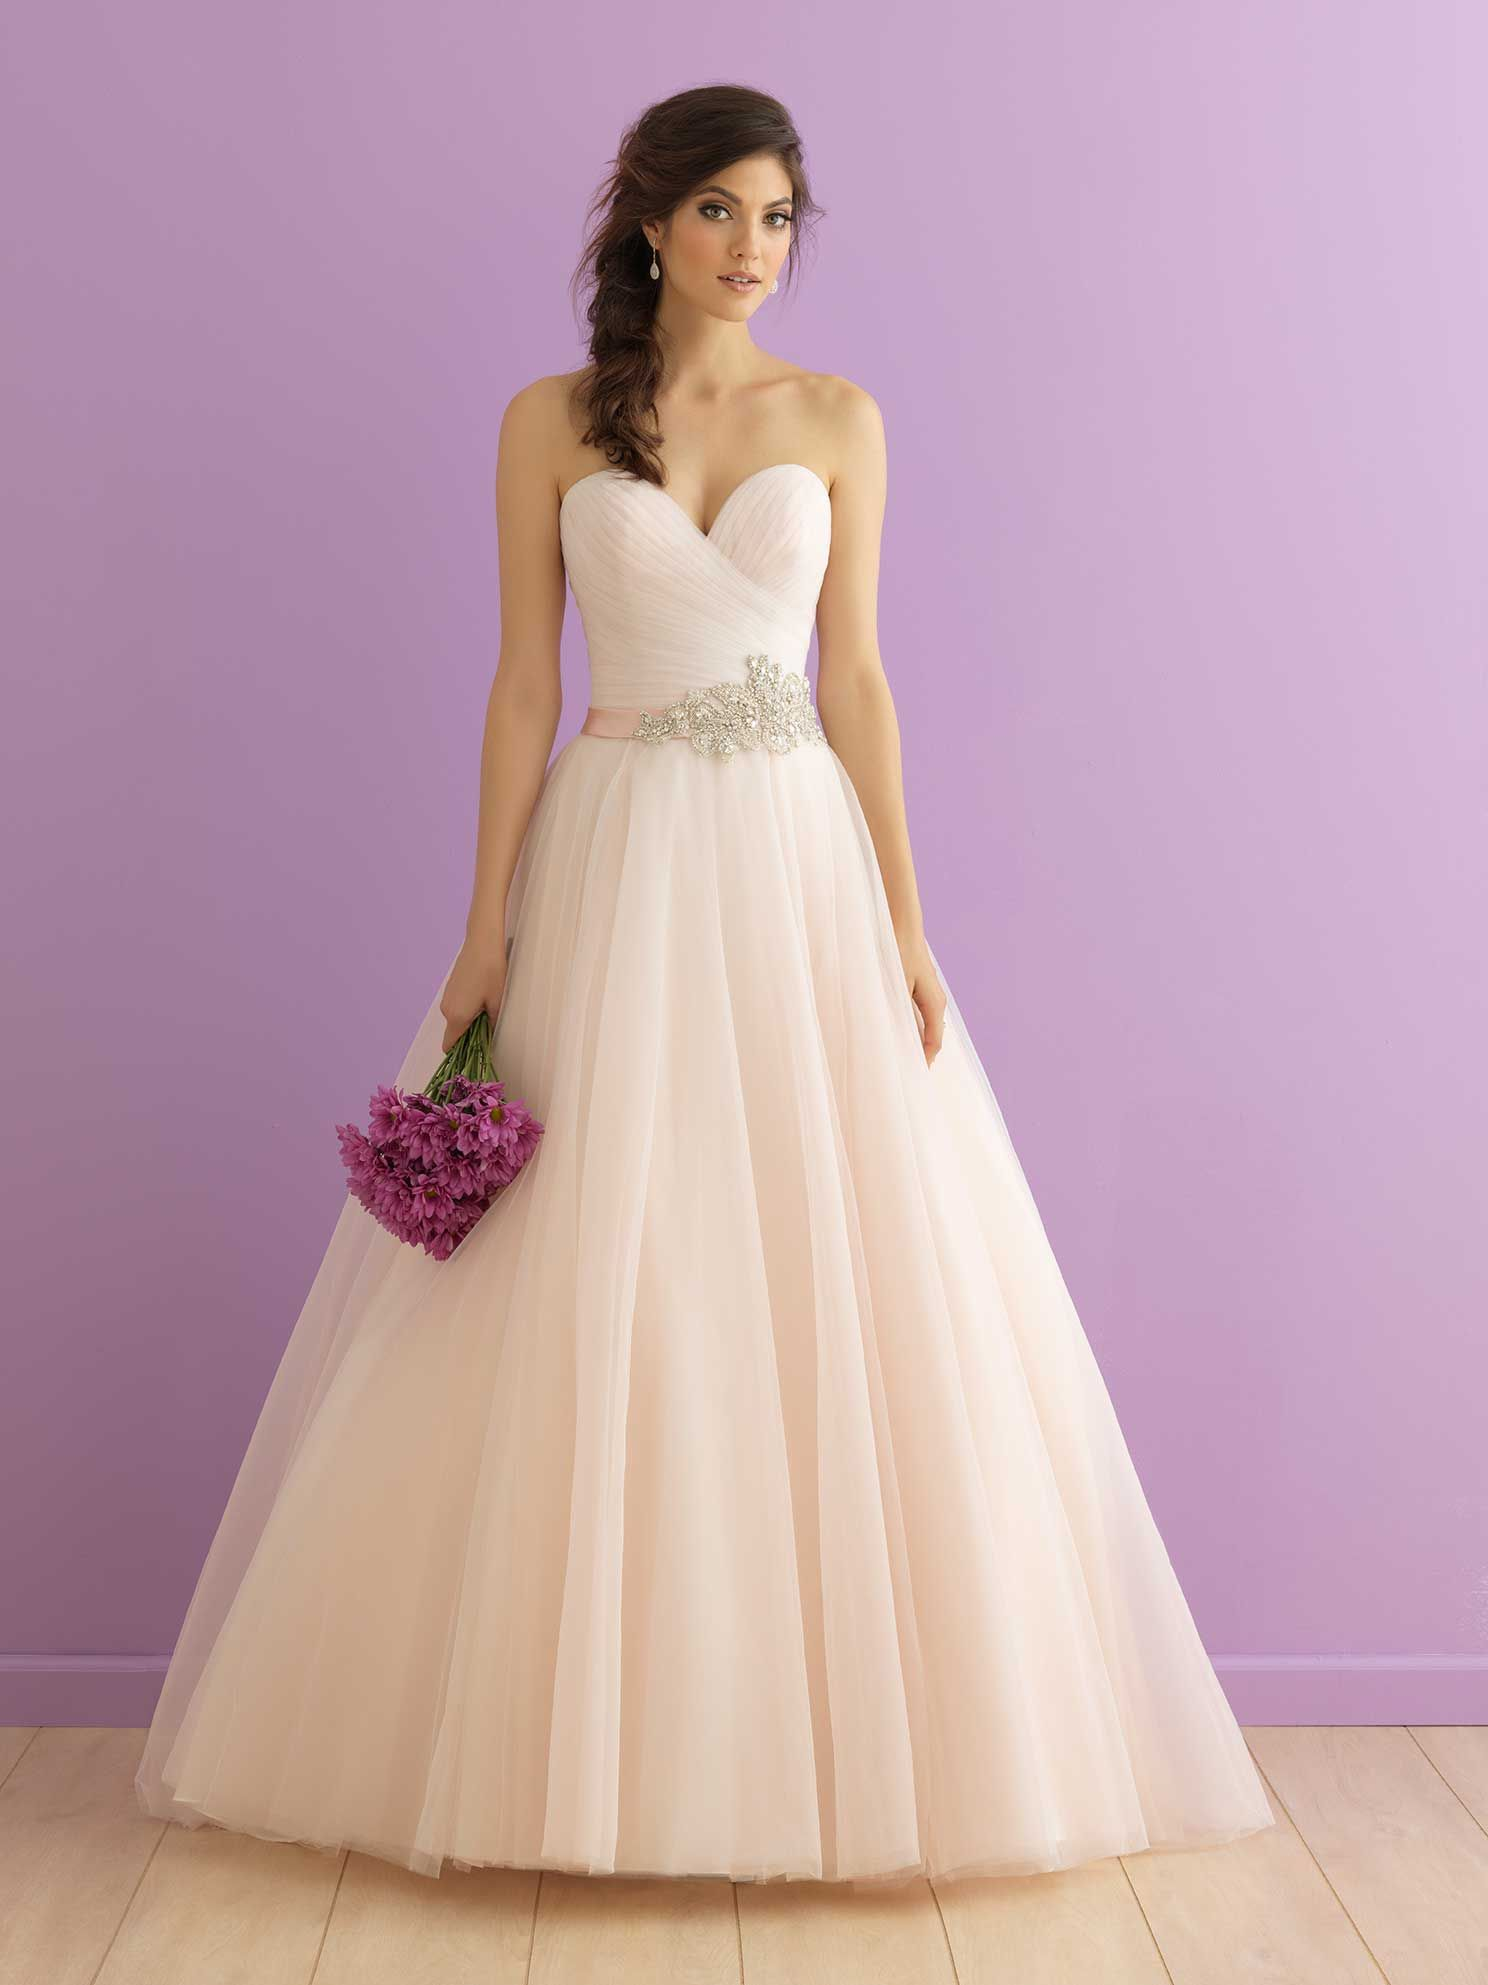 New Bridal Gown Available at Ella Park Bridal   Newburgh, IN ...